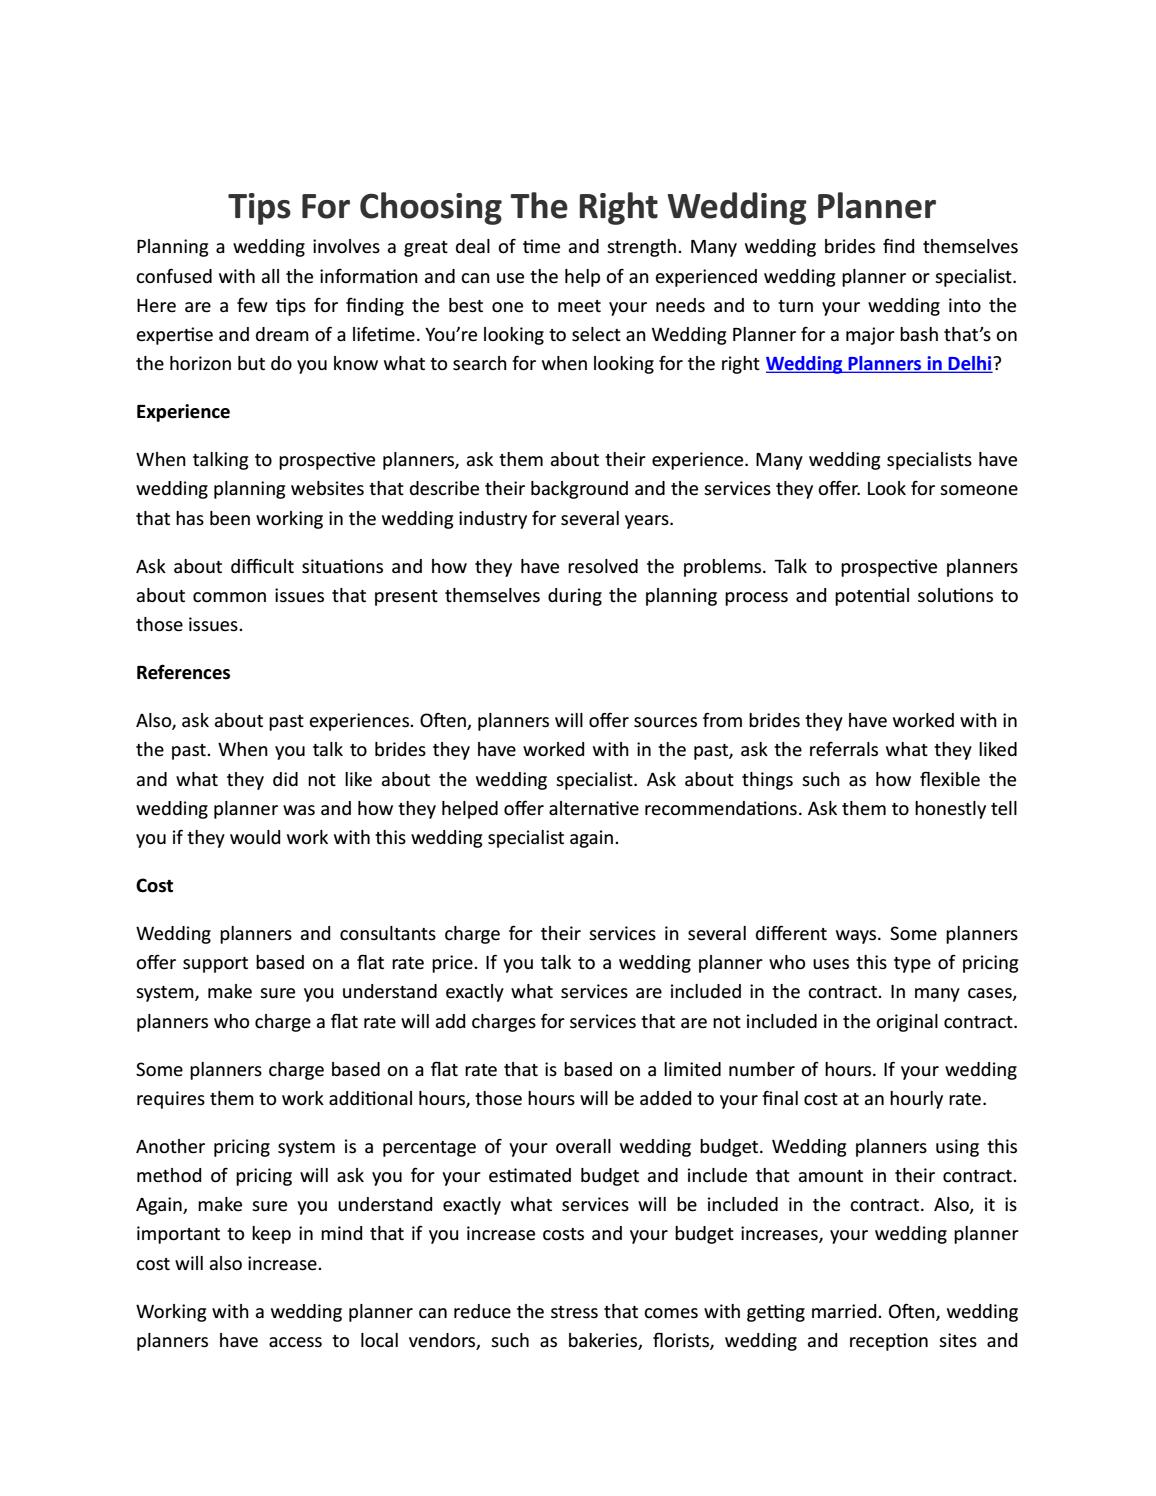 Tips For Choosing The Right Wedding Planner By Event Organisers In